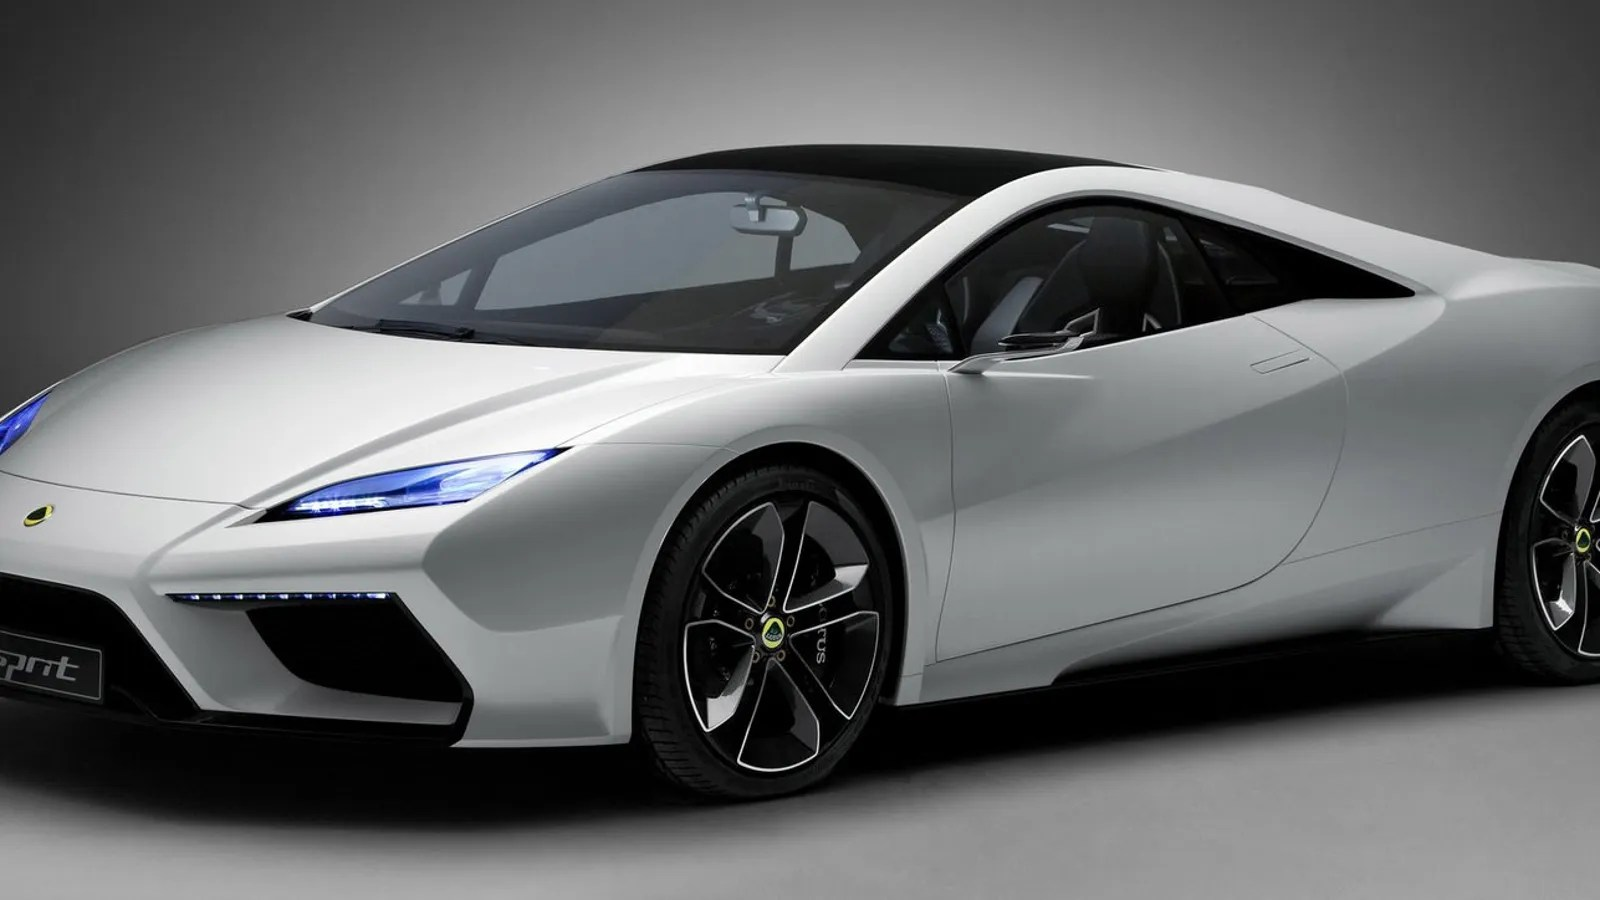 Esprit New New Lotus Ceo The Esprit Is Dead But We Could Do A Crossover